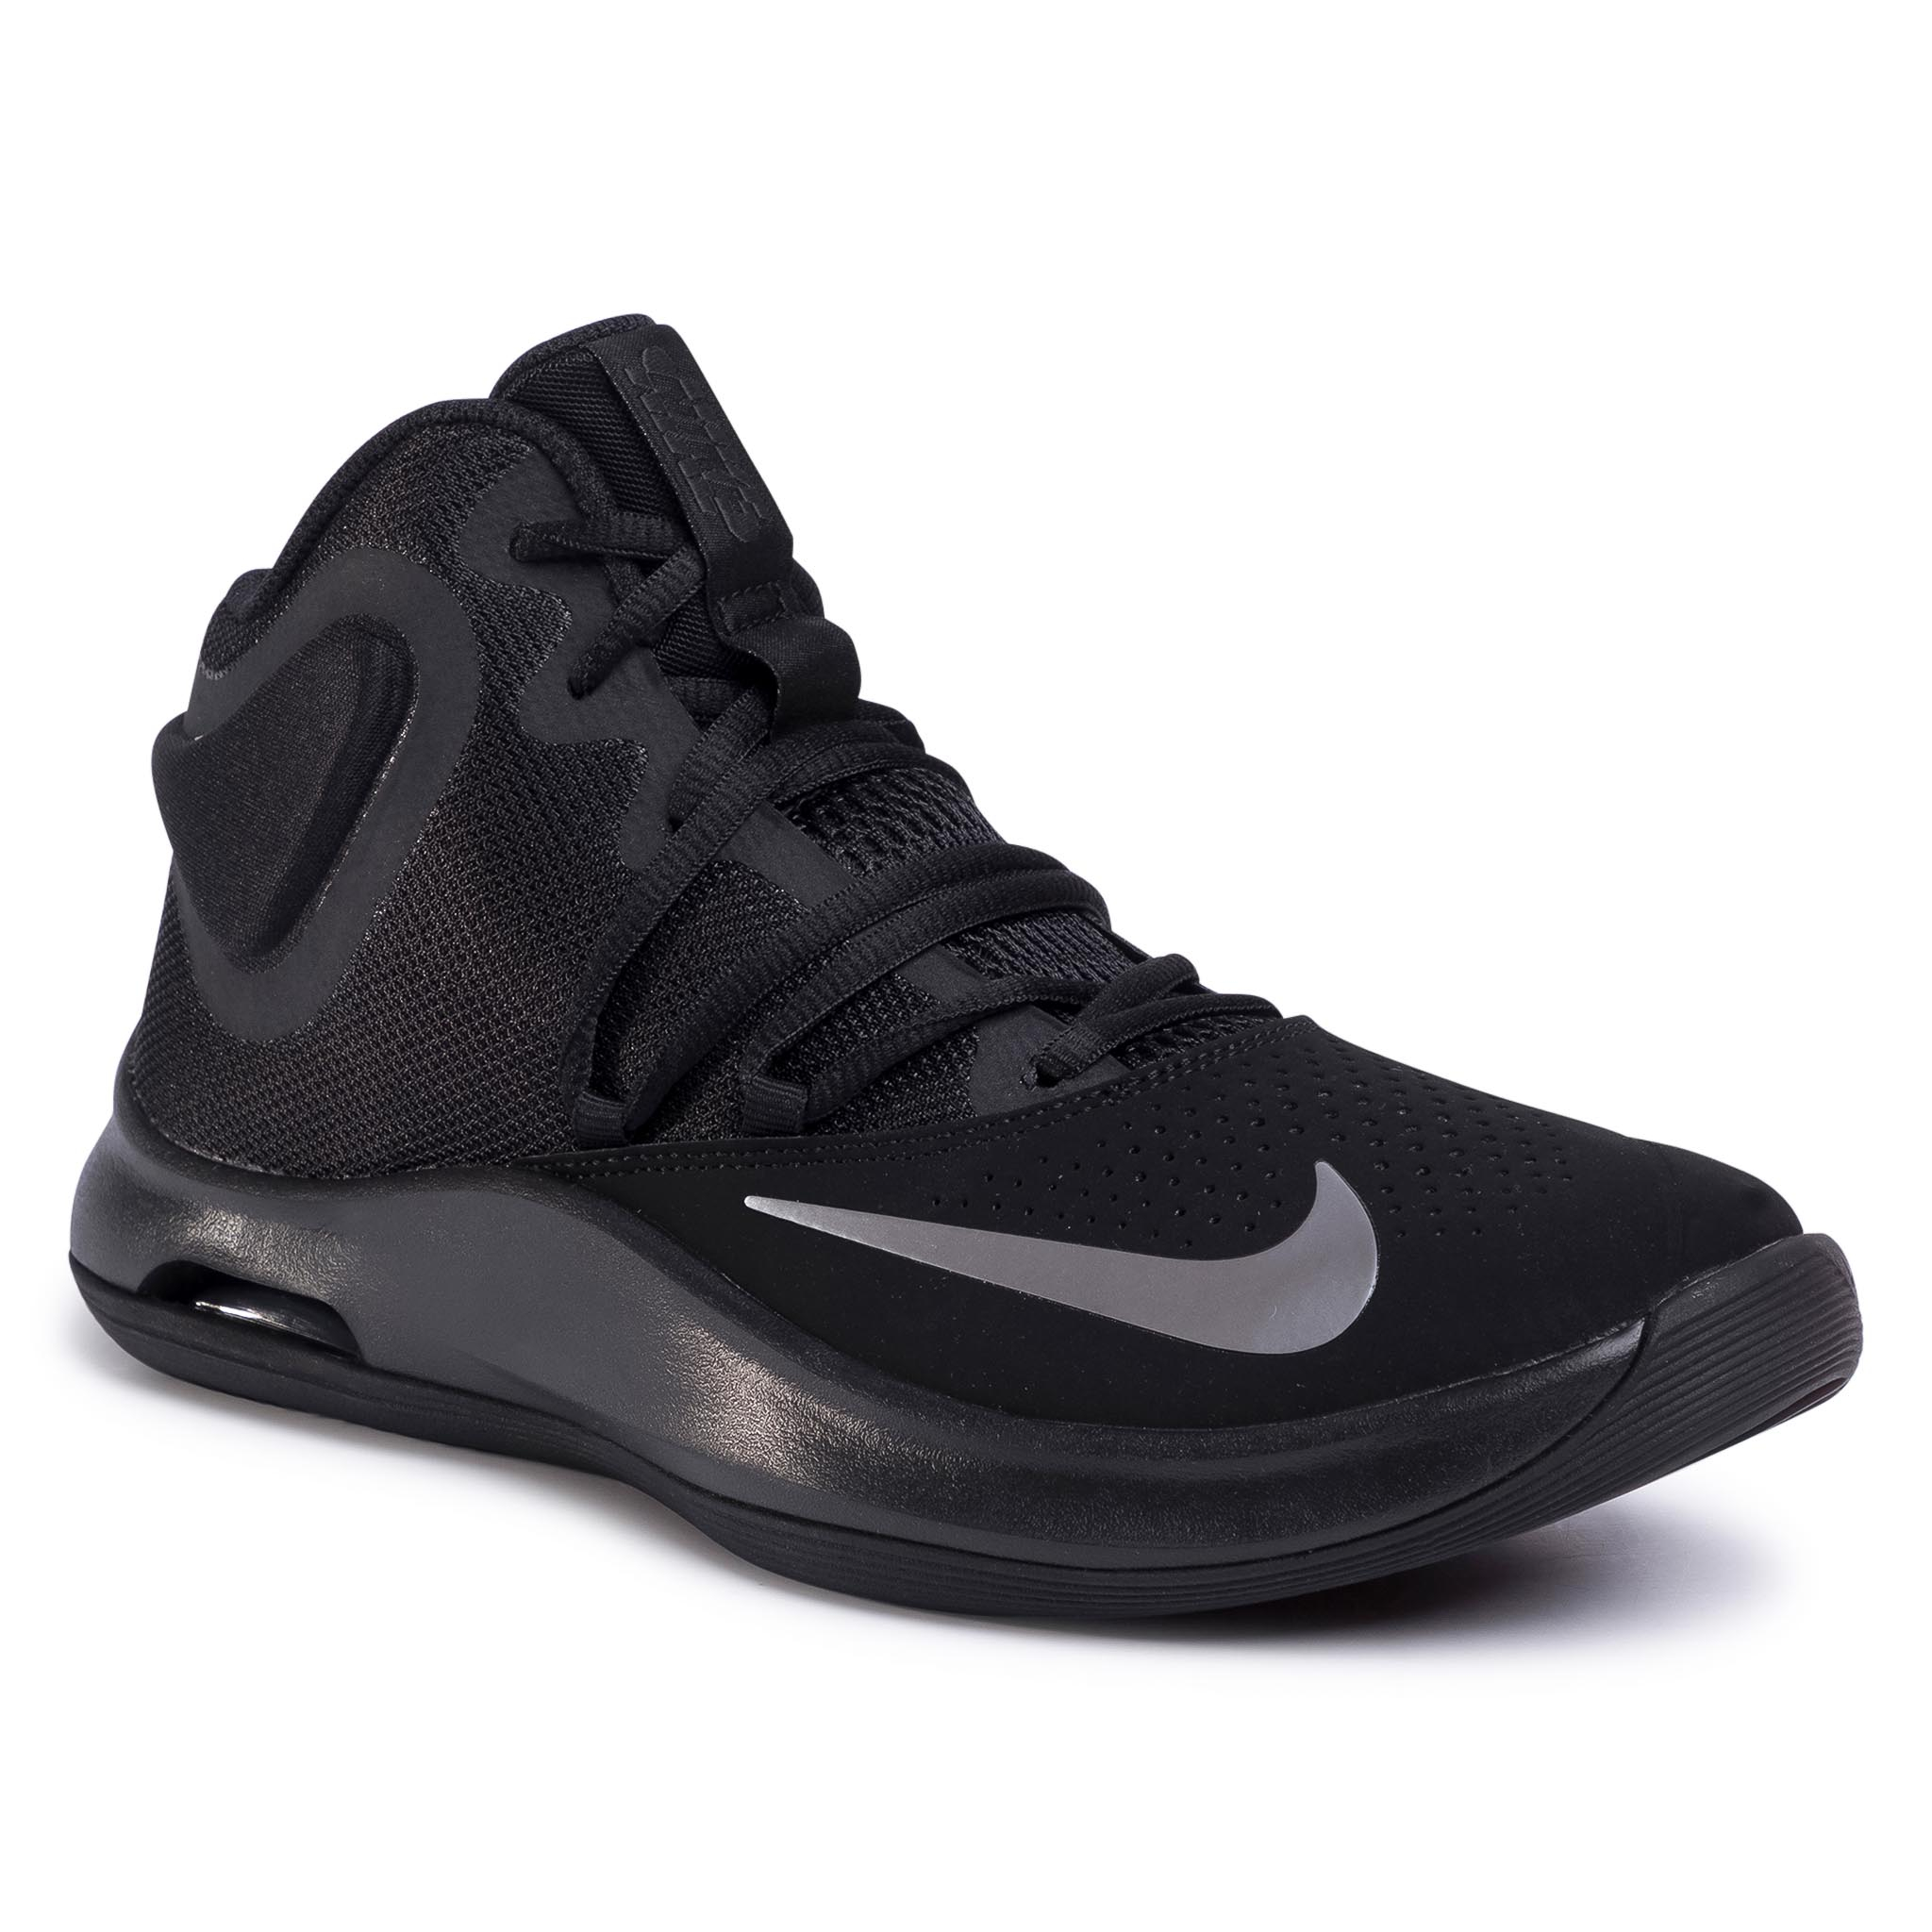 Pantofi Nike - Air Versitile Iv Nbk Cj6703 001 Black/Mtlc Cool Grey imagine